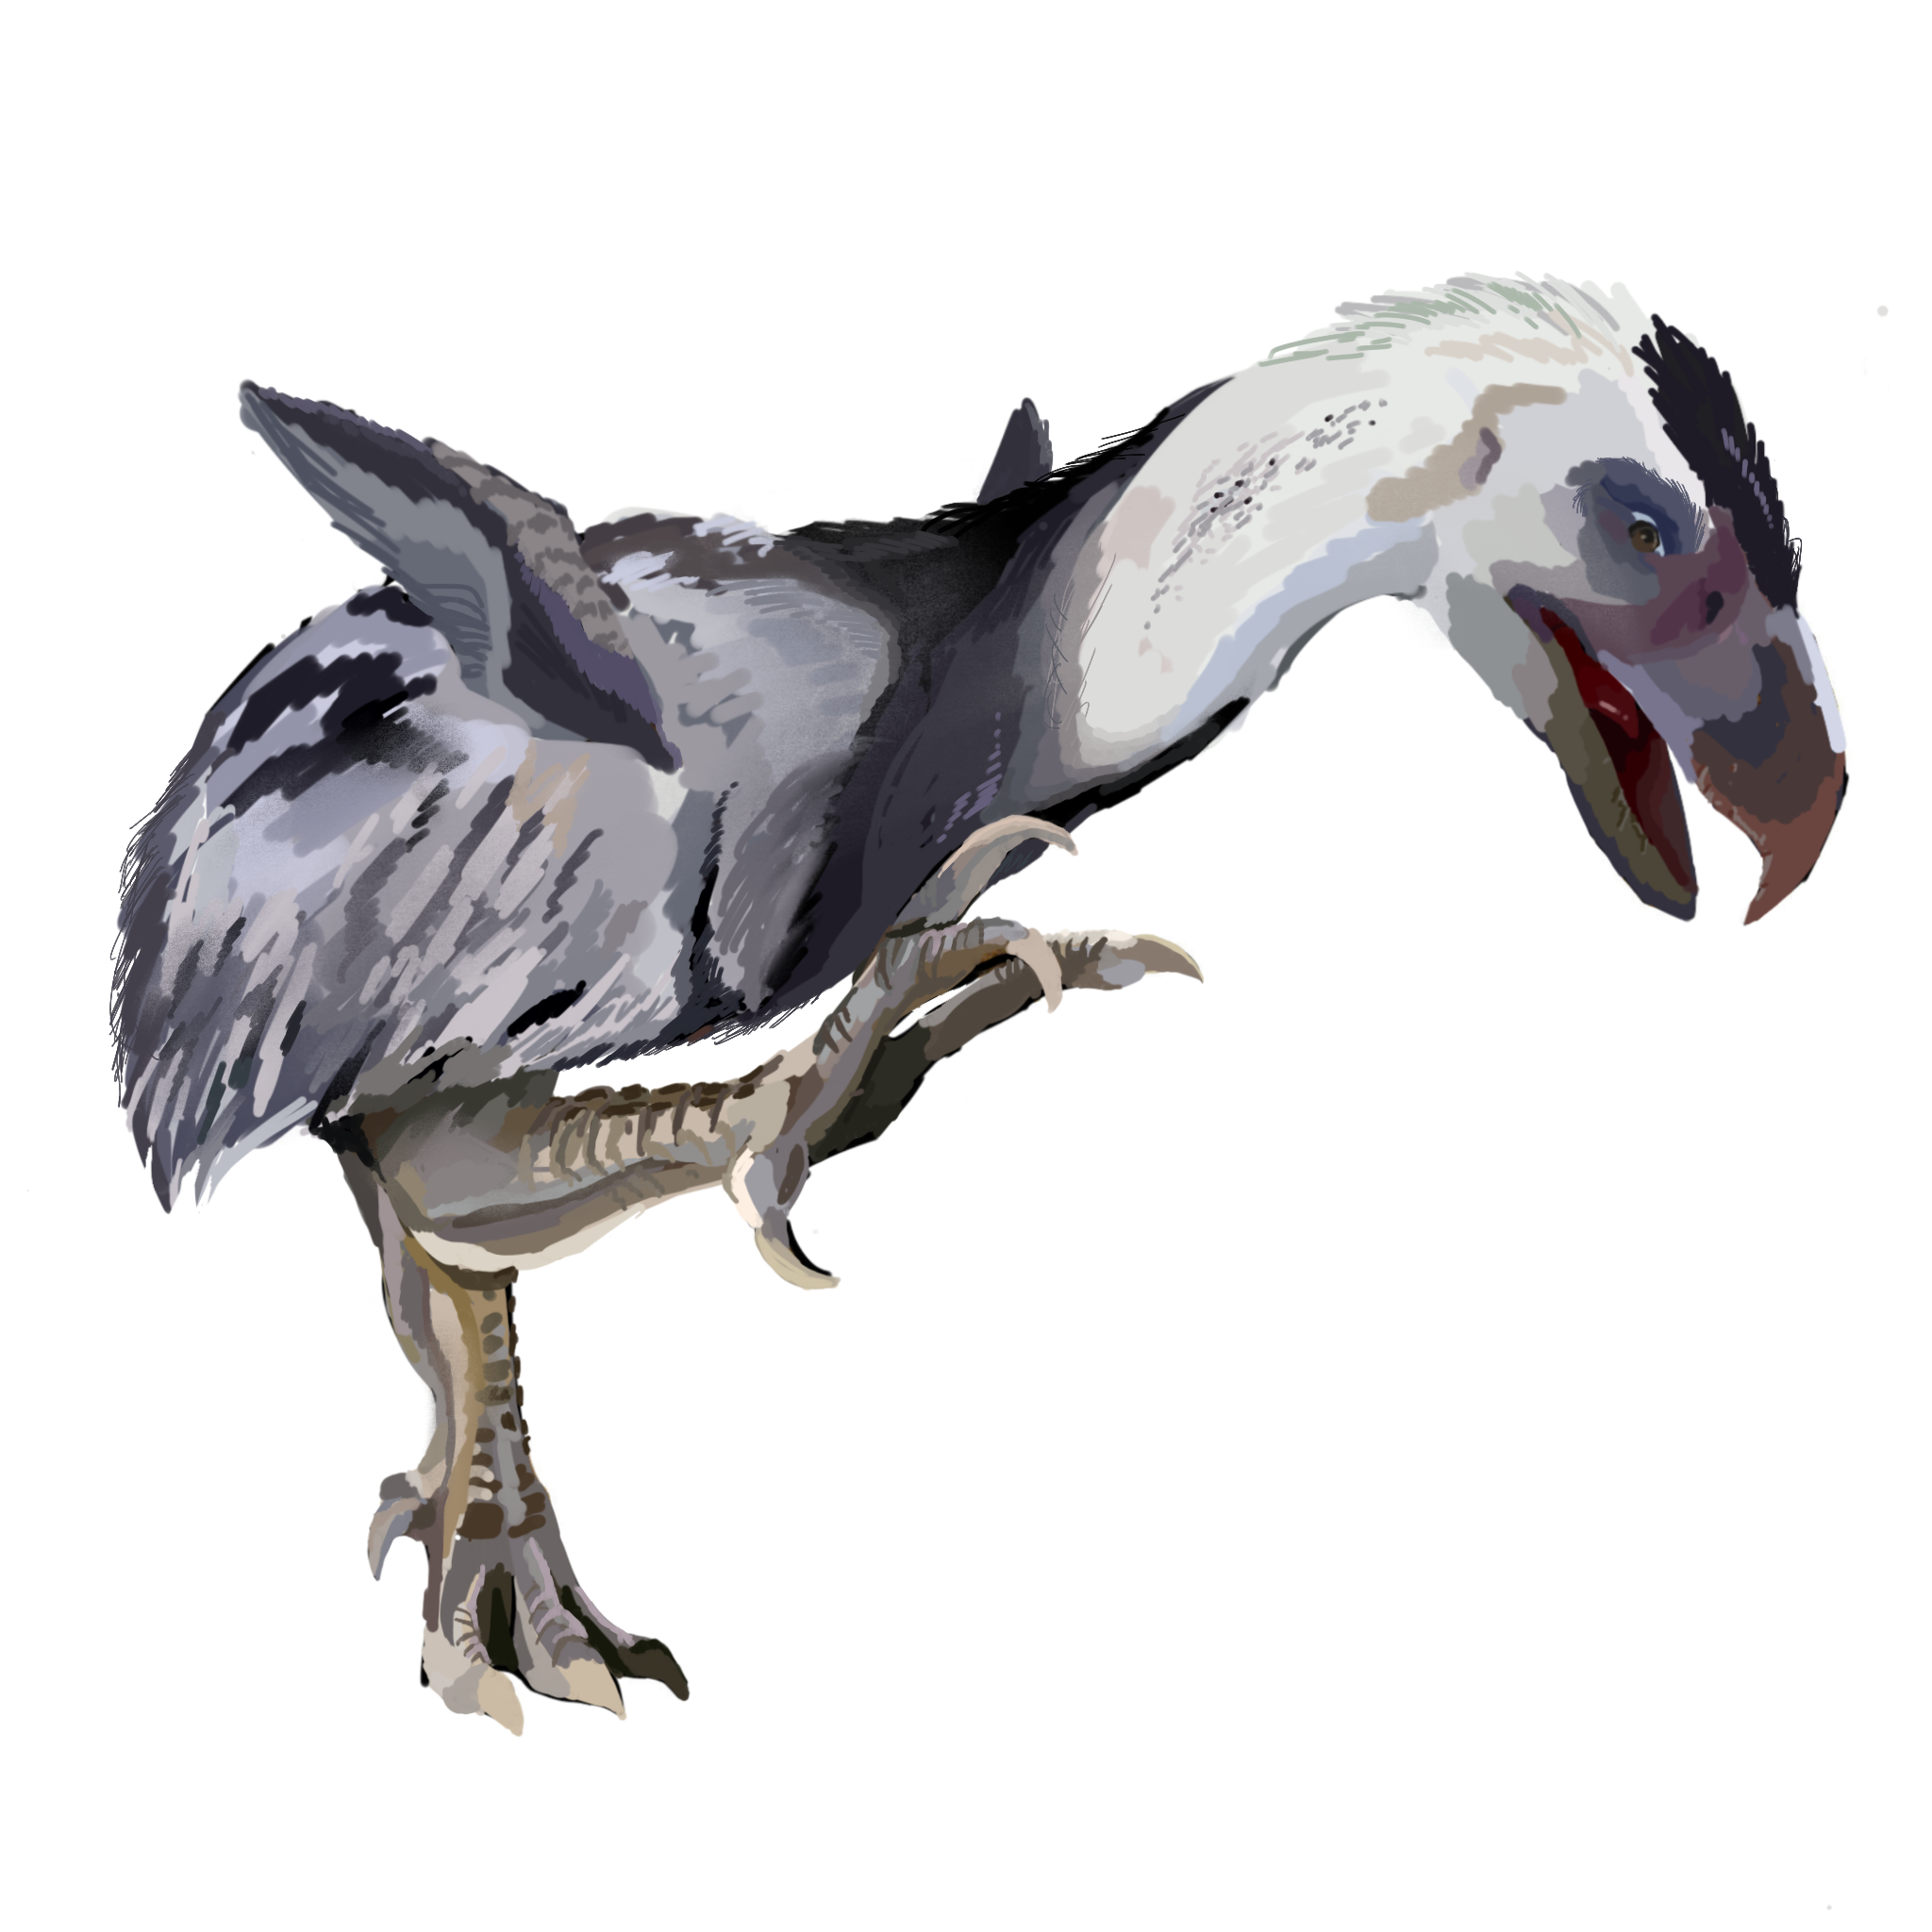 File:Reconstruction drawing of Titanis walleri.png - Wikimedia Commons